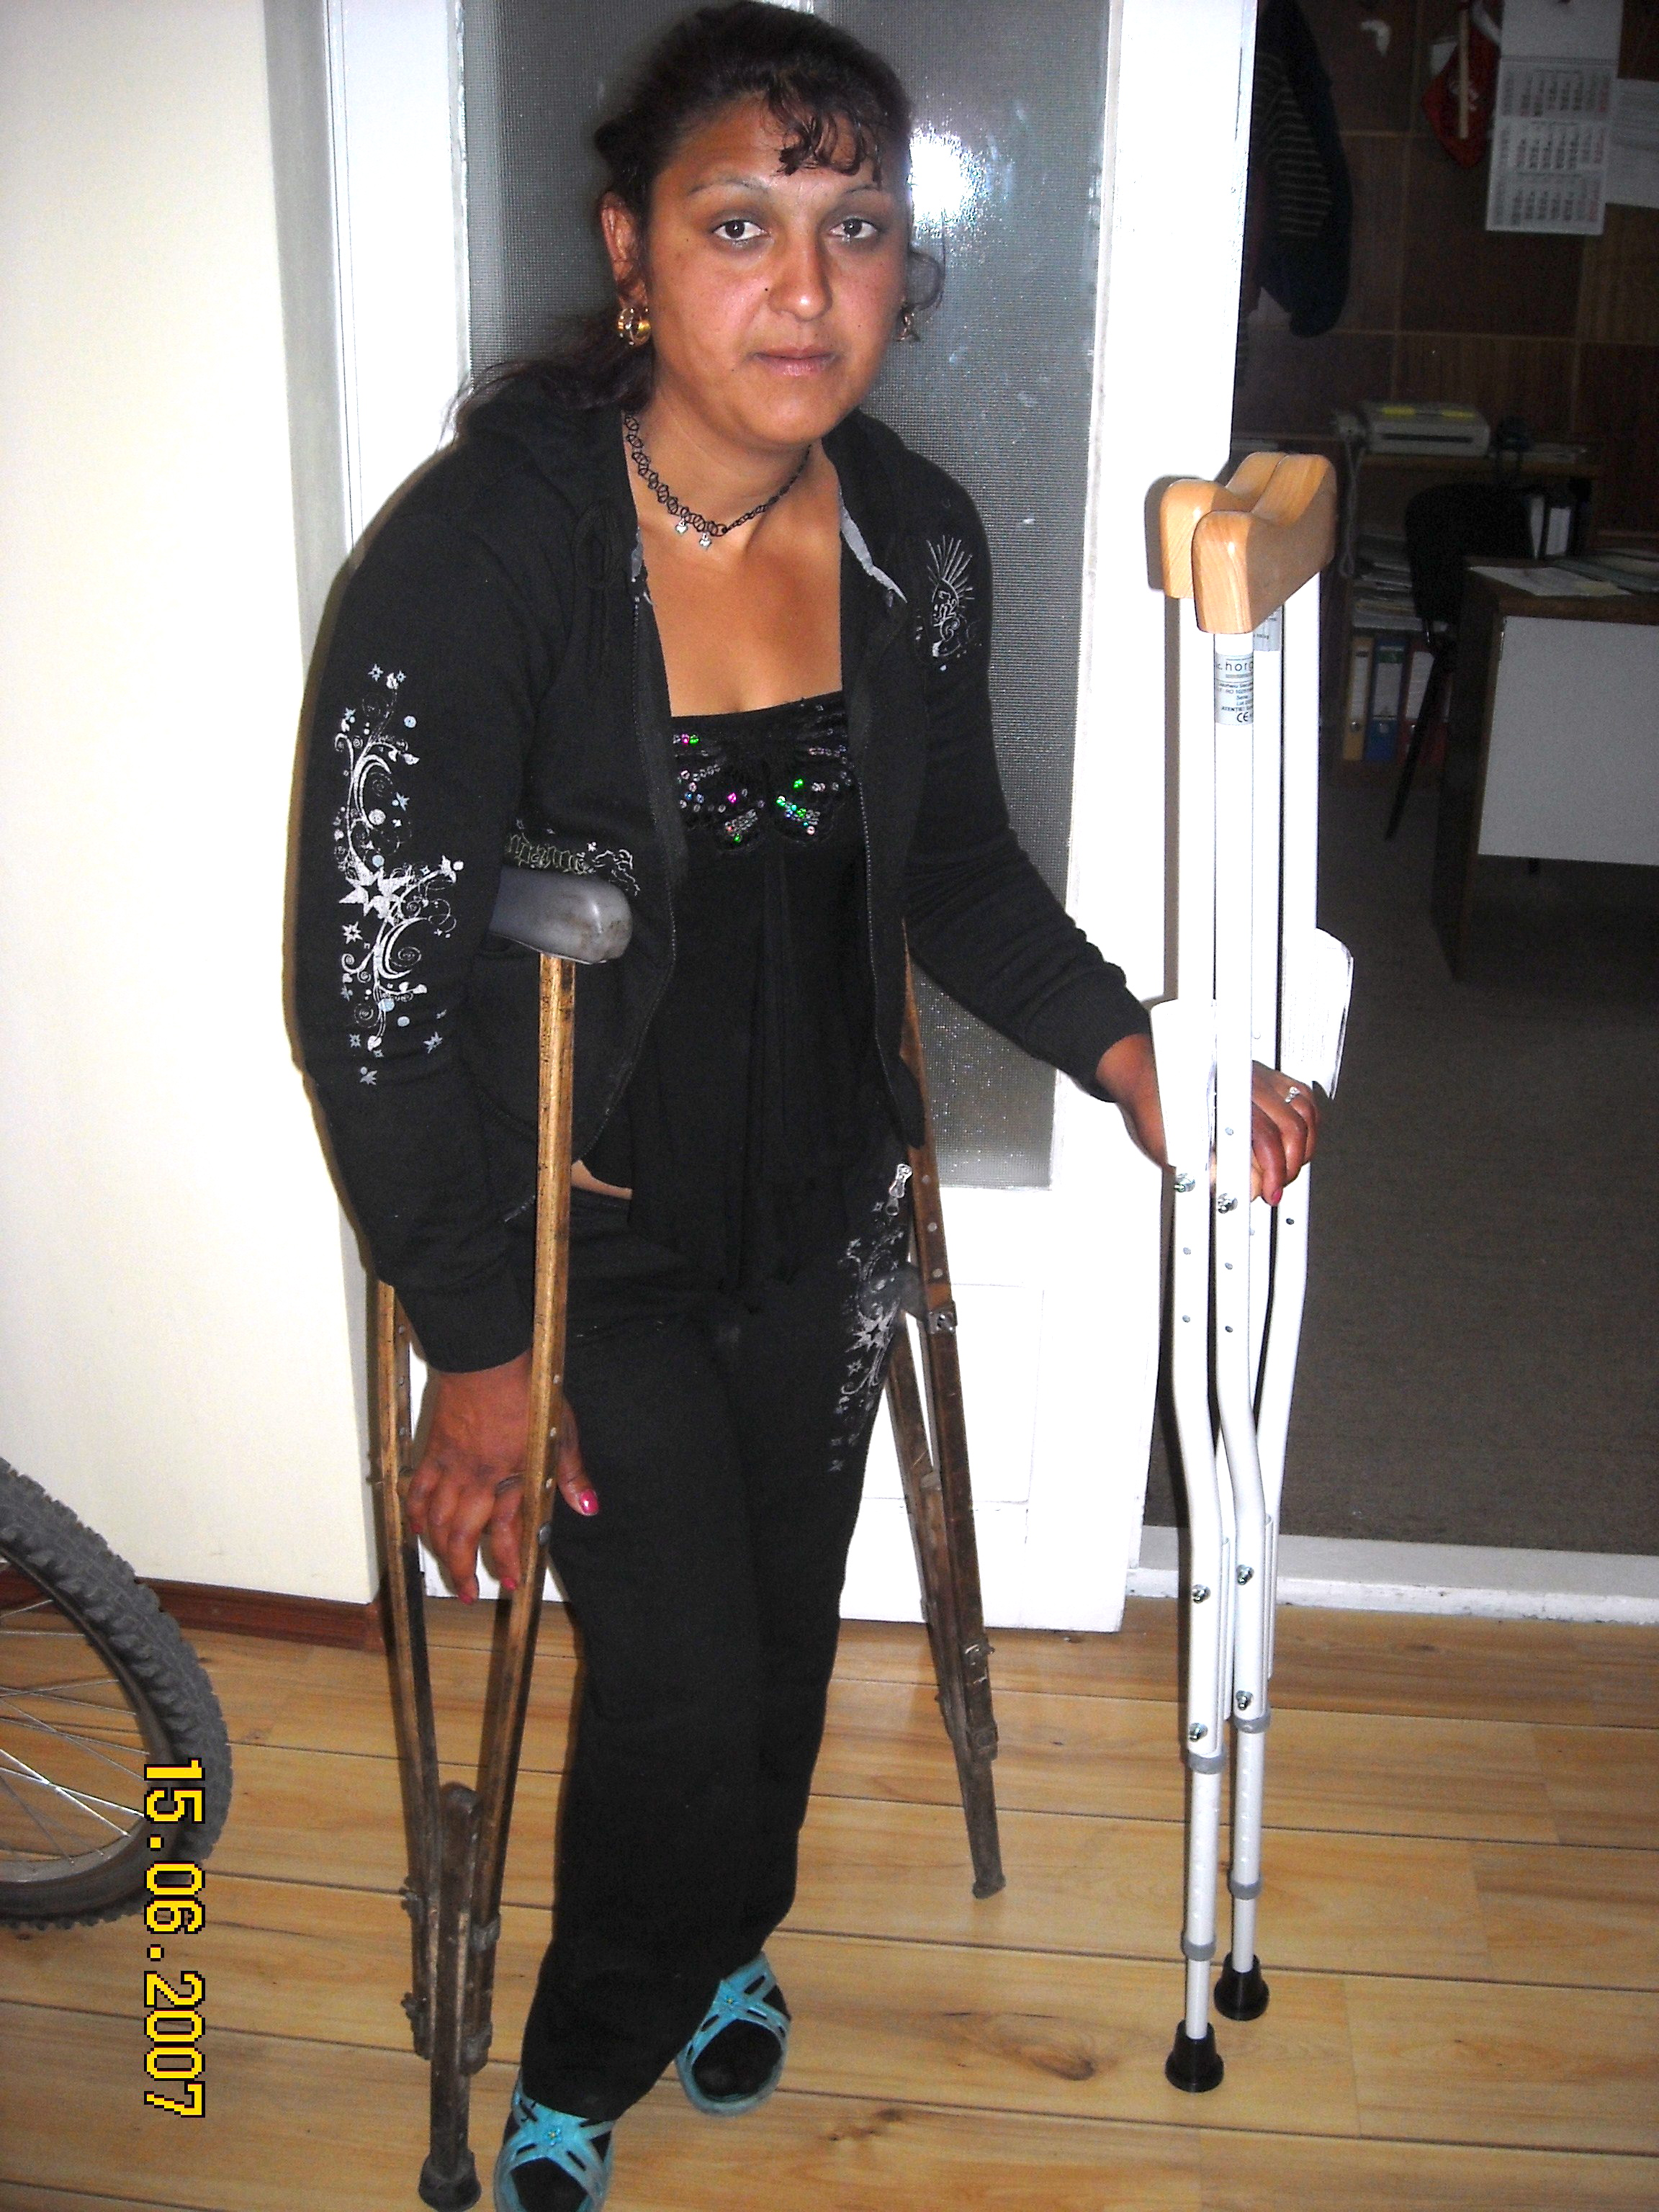 Because of God's Children, this Gypsy teen now ha crutches her size!